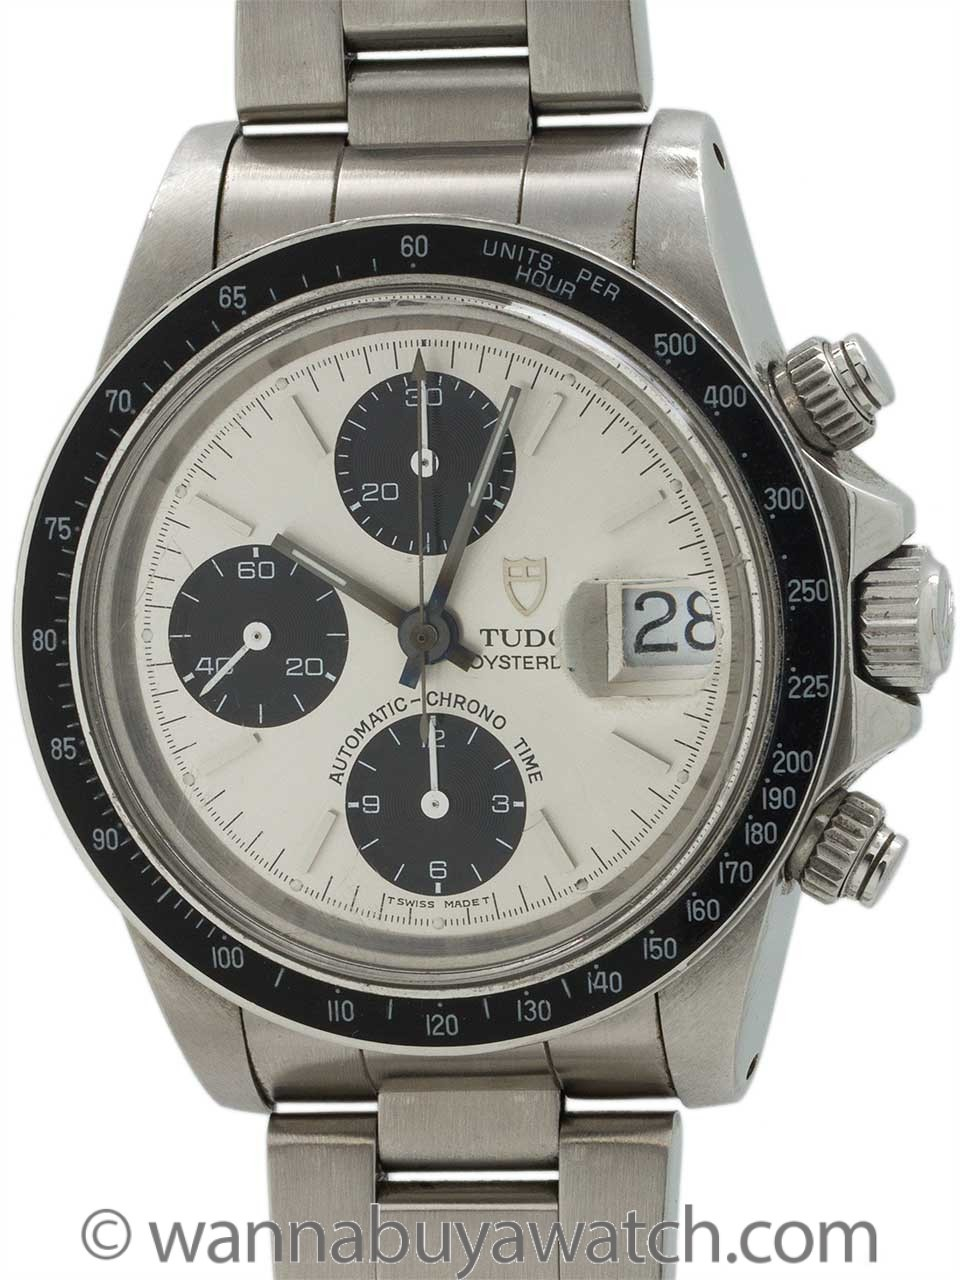 Tudor Oyster Big Block Chronograph ref 79160 circa 1994 Box & Papers